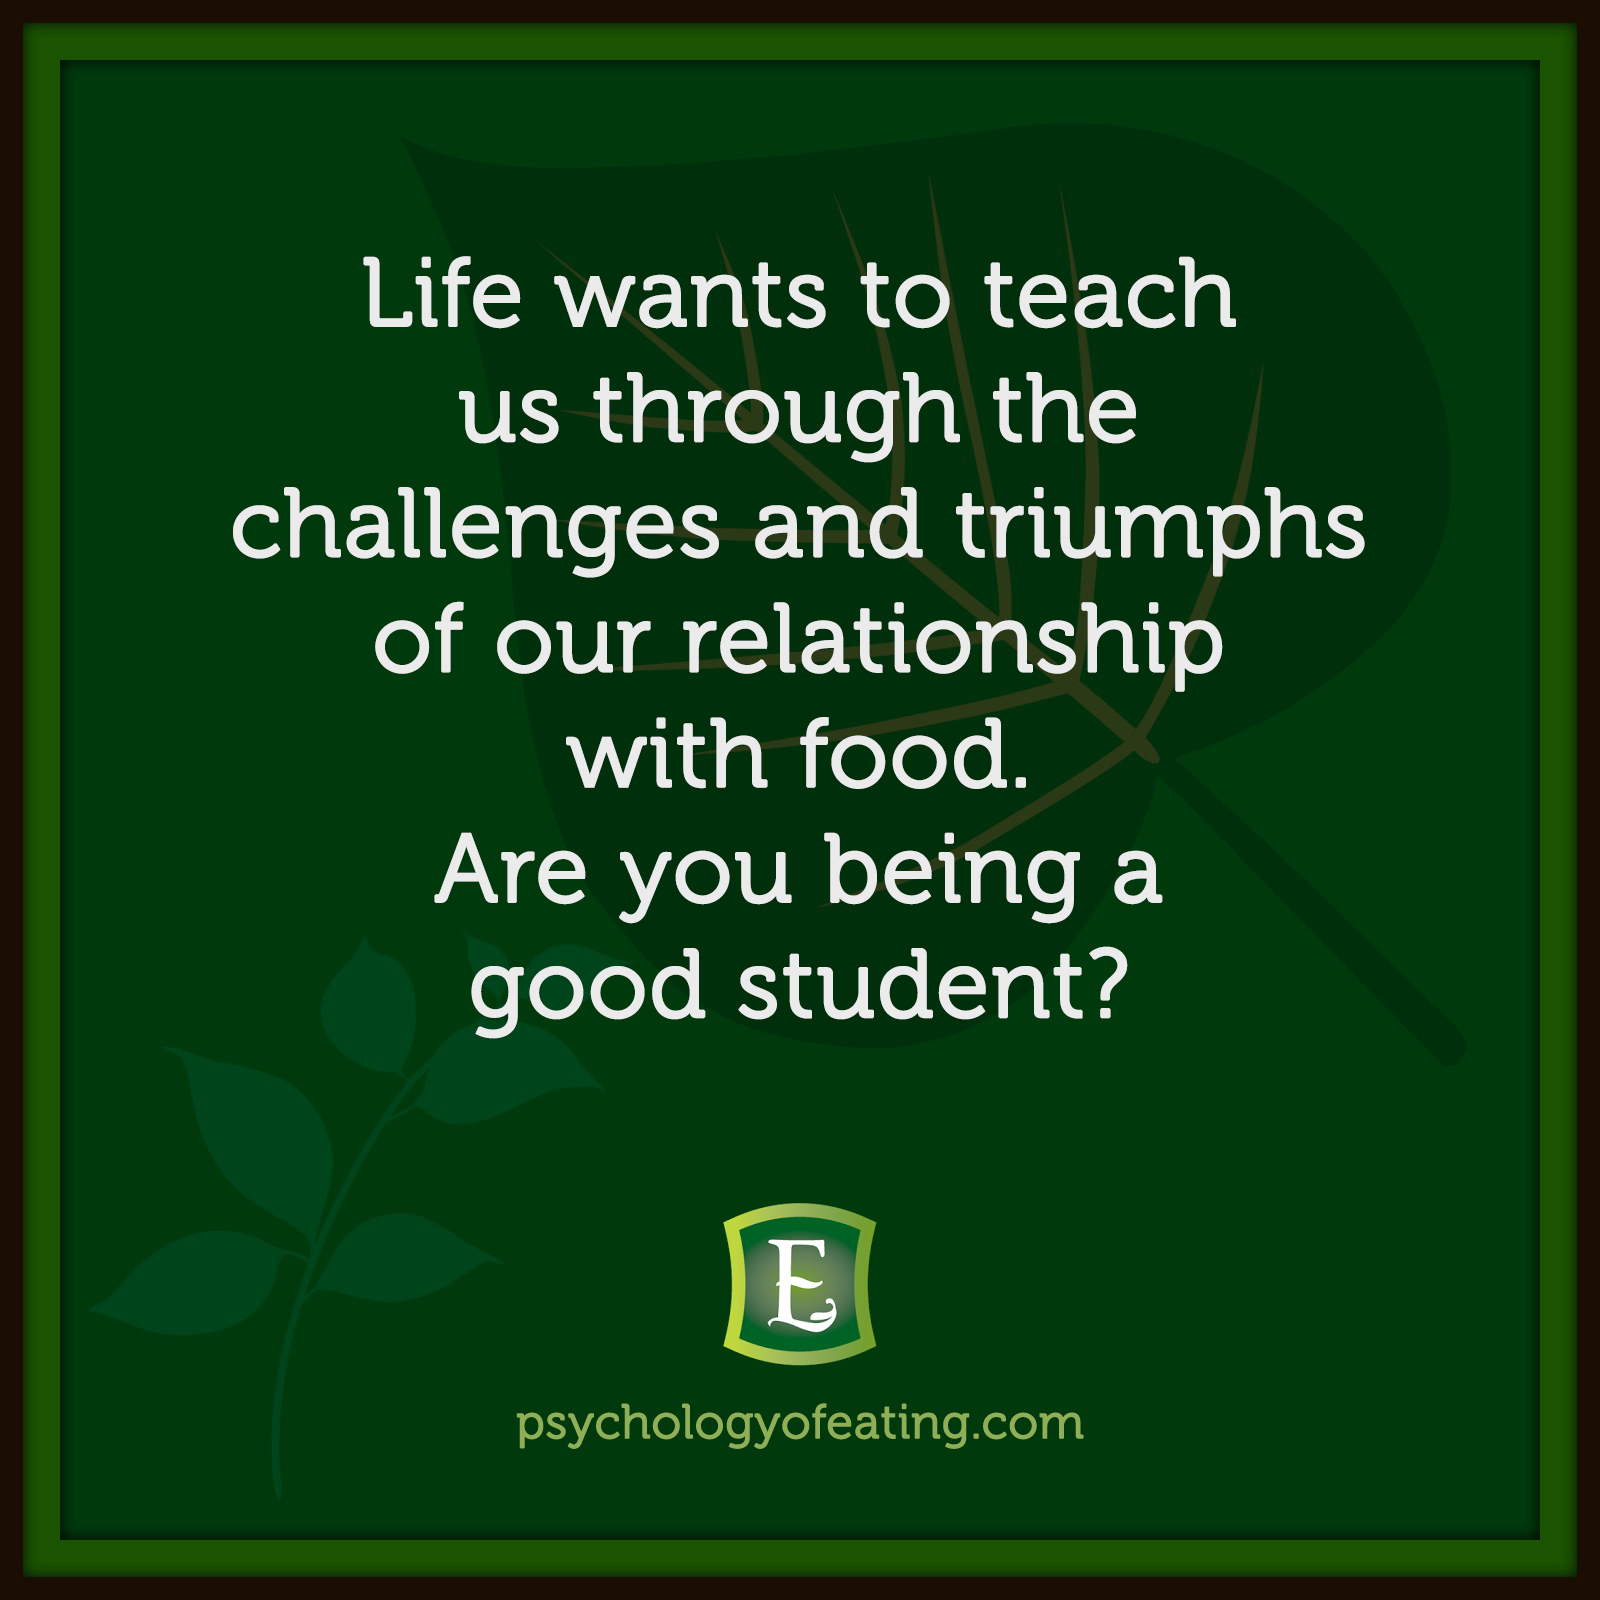 Life wants to teach us through the challenges and triumphs of our relationship with food. Are you being a good student? #health #nutrition #eatingpsychology #IPE